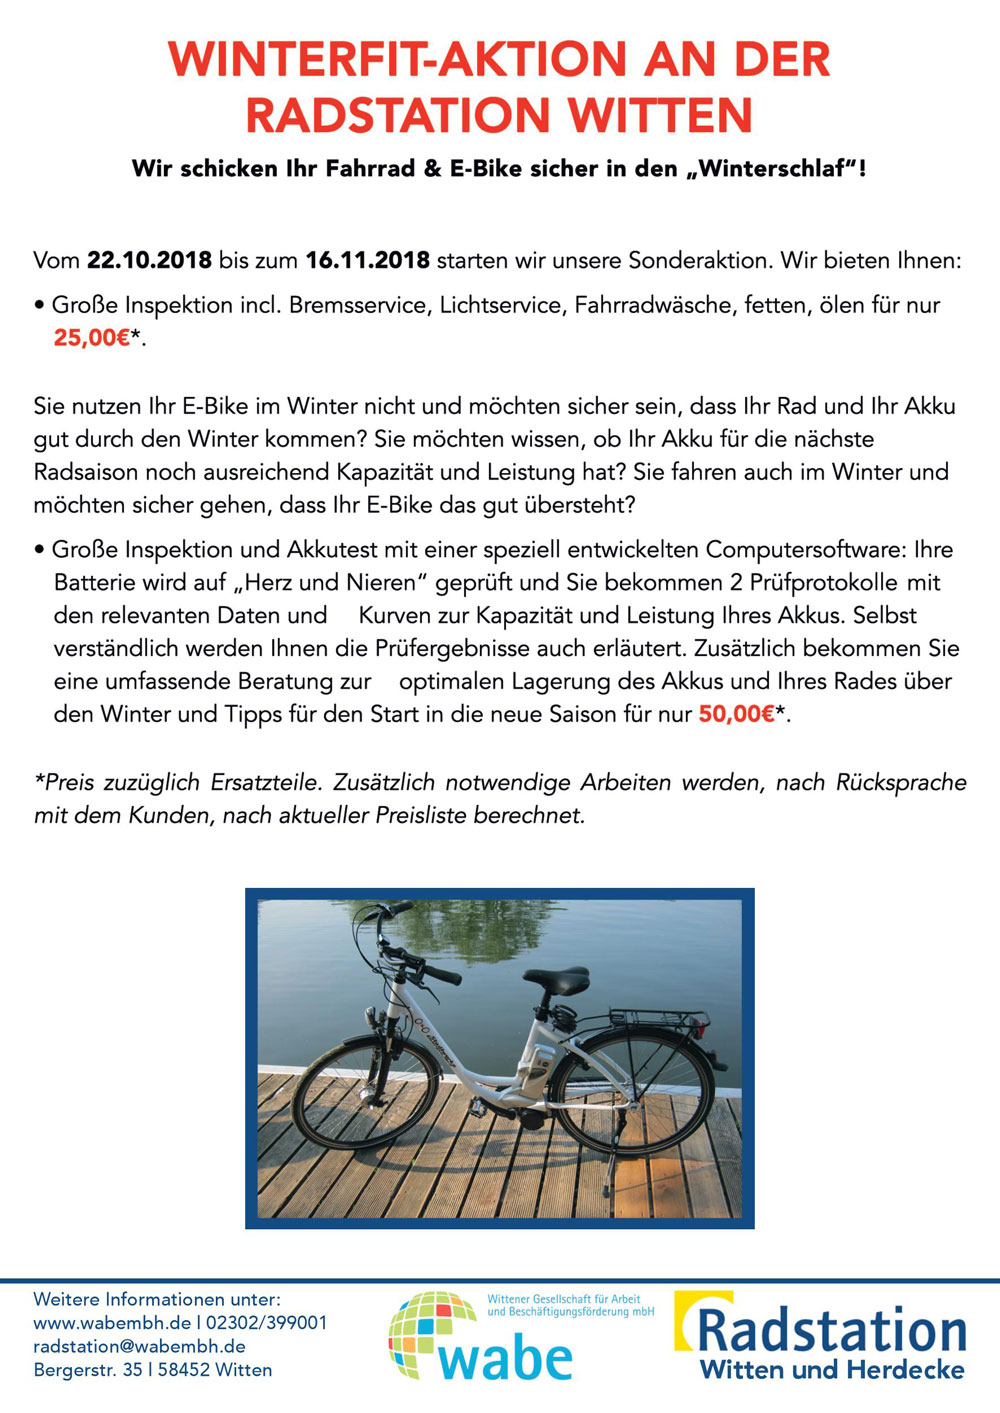 Winterfit-Aktion an der Radstation